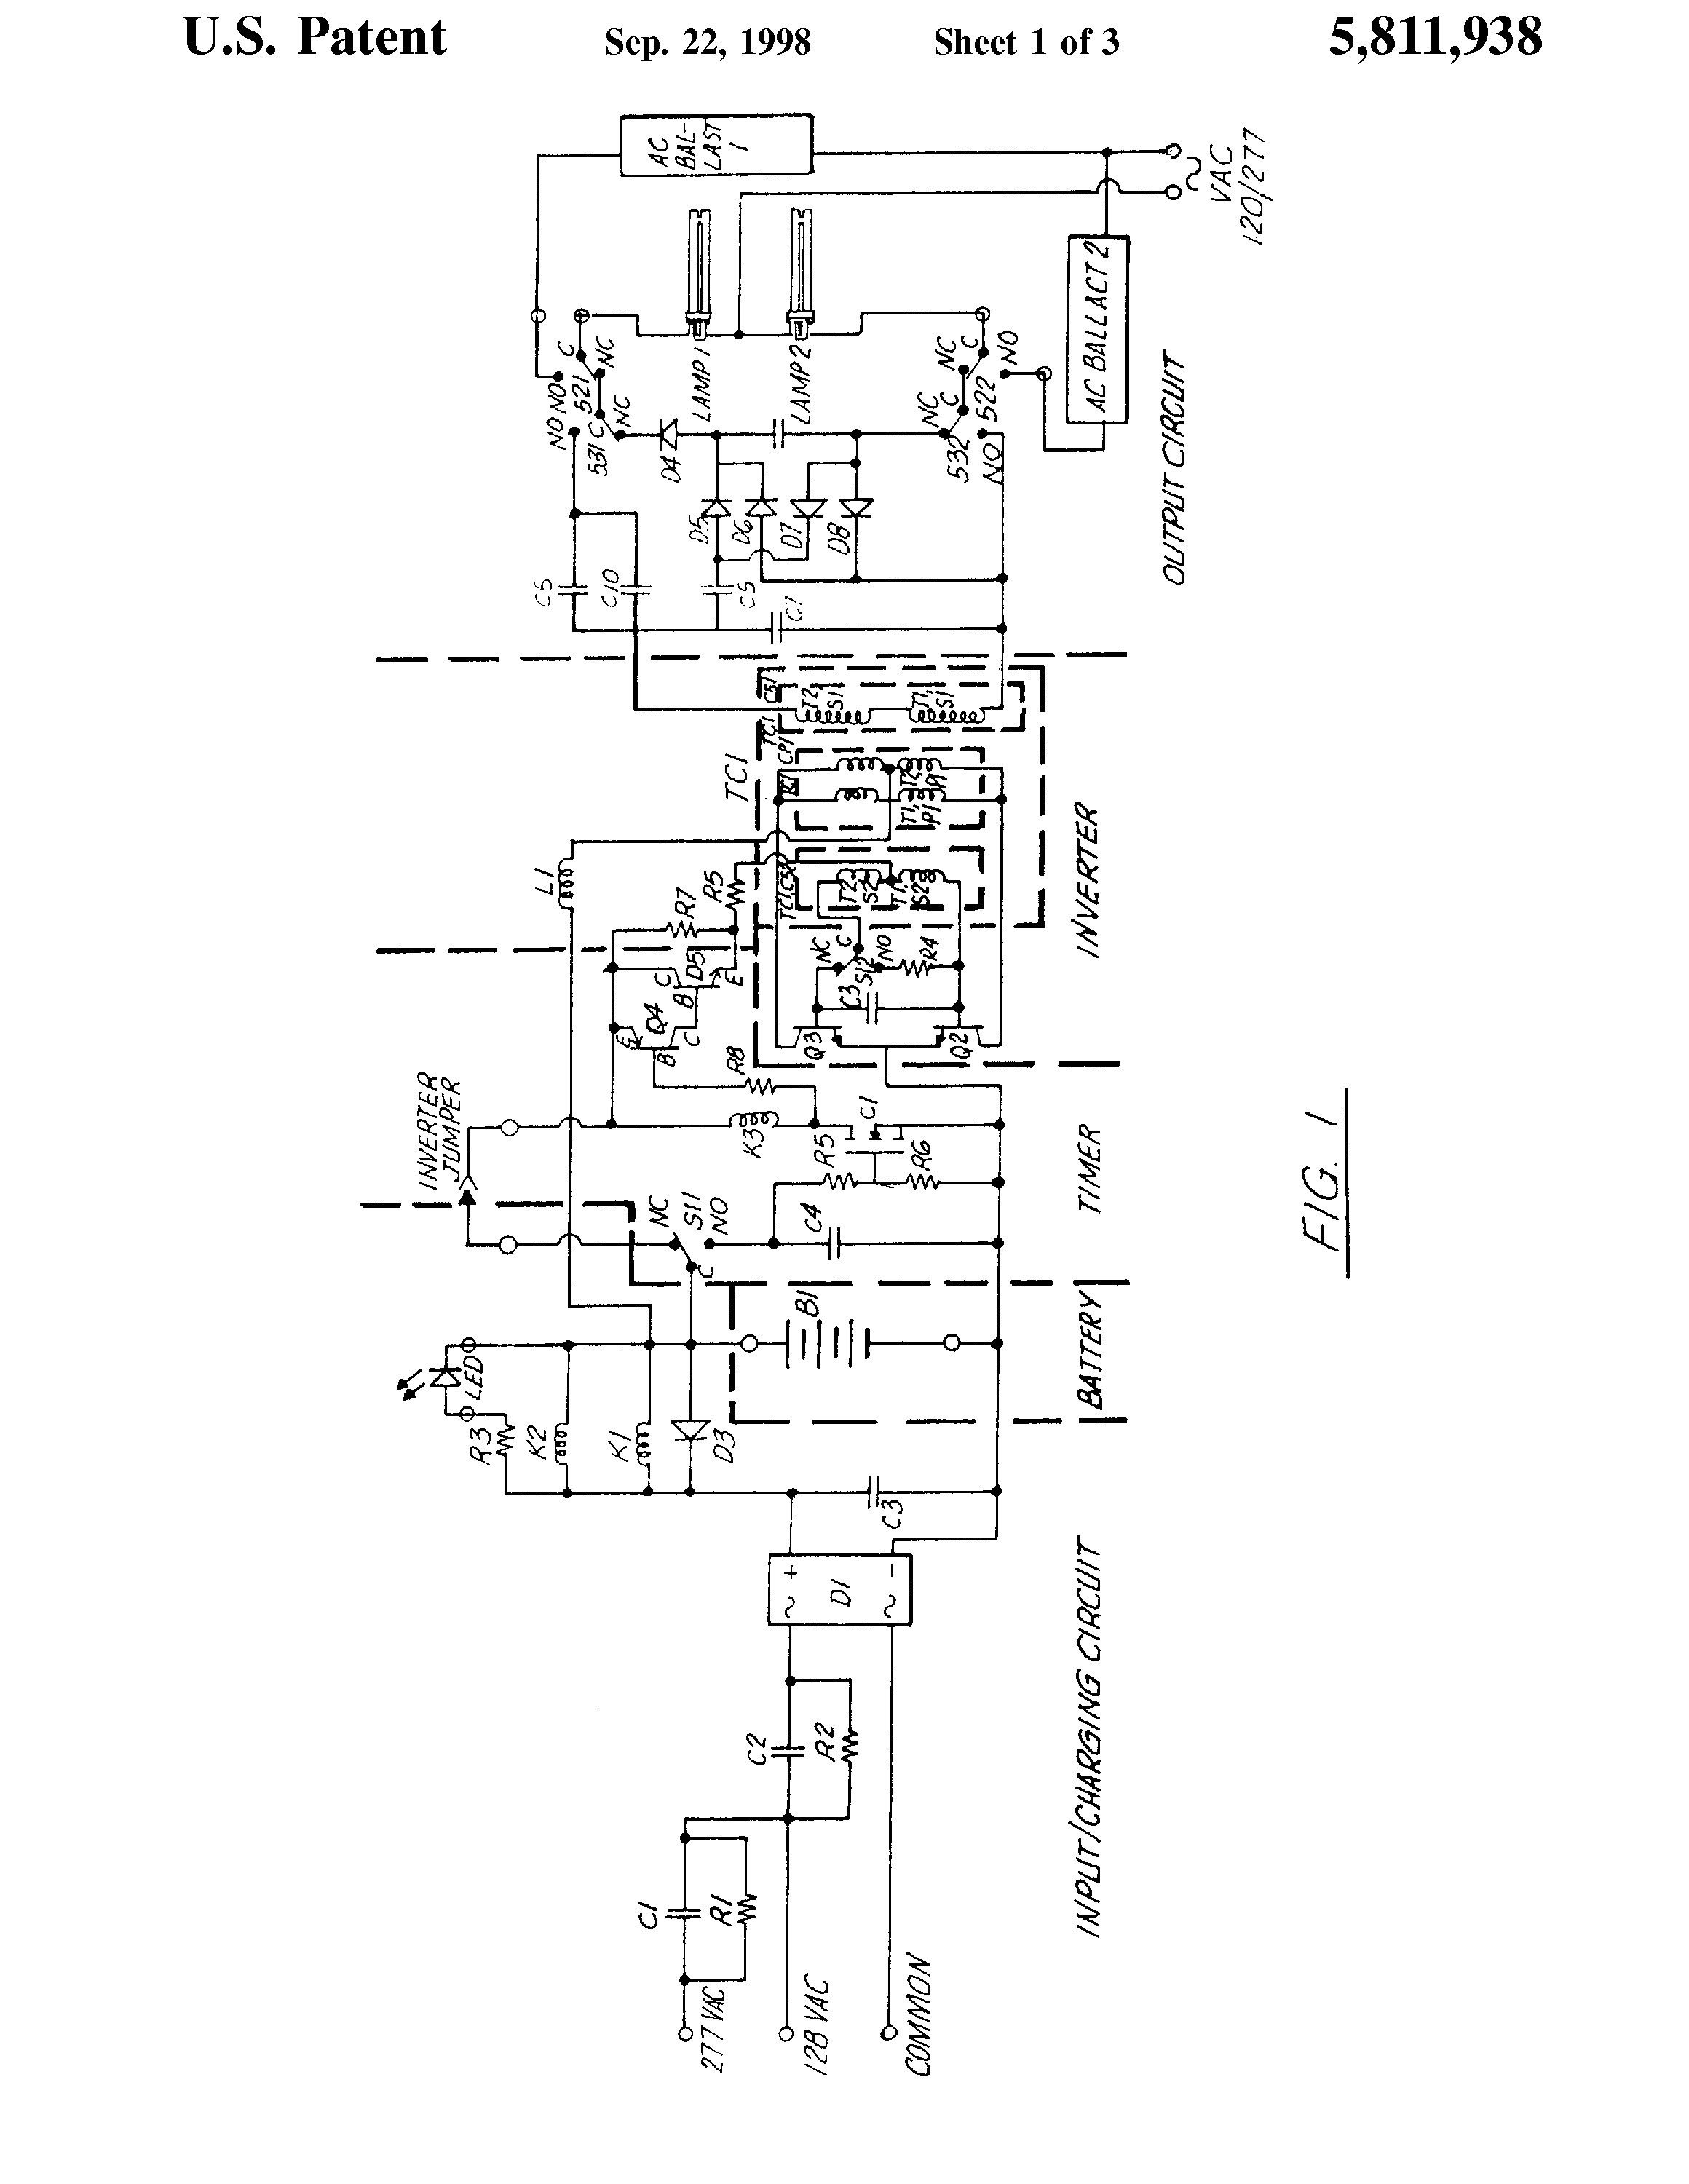 lennox furnace wiring diagram free download schematic sni 35 adjustable line output converter wiring diagram ... scosche fdk11b wiring diagram free download schematic